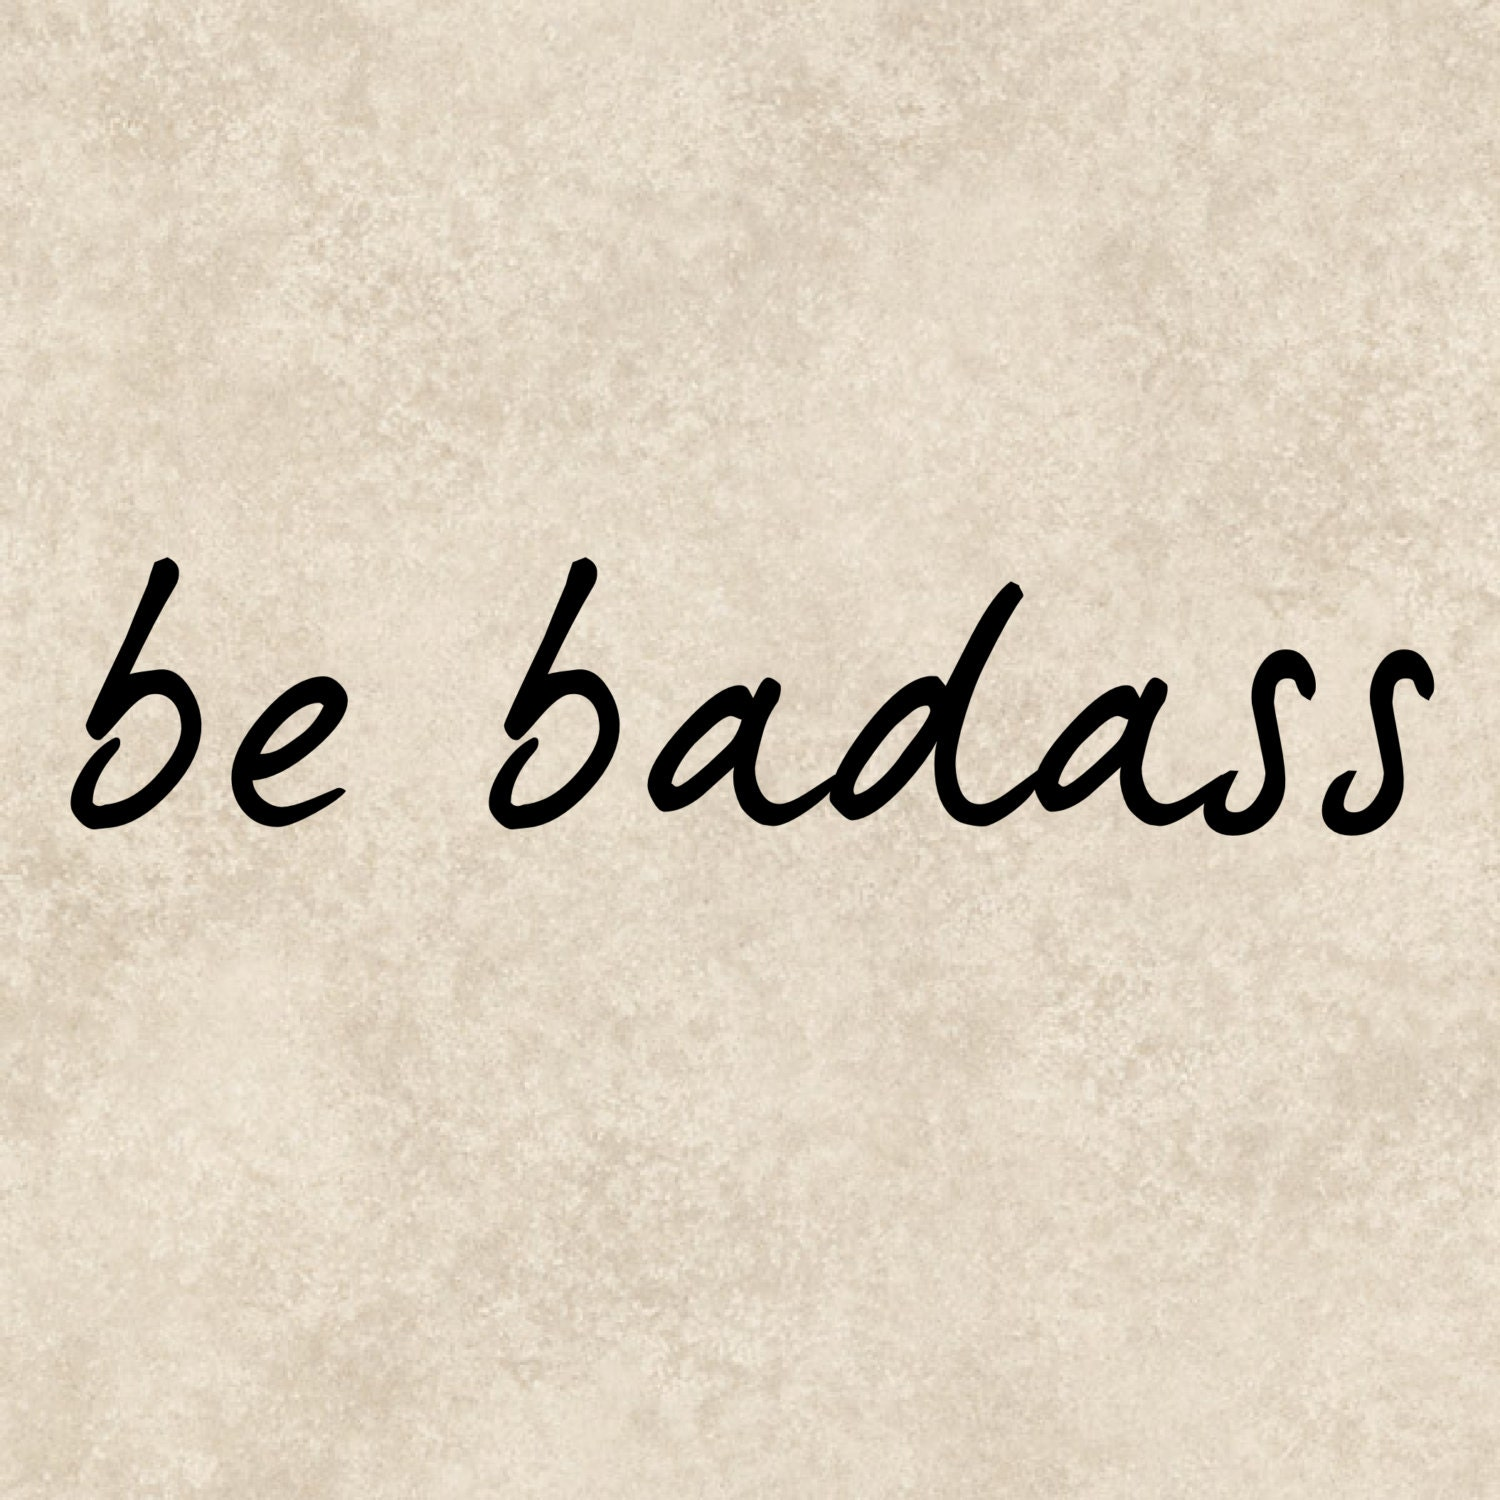 Car decals tribal graphic design zion series - Be Badass Decal Be Badass Sticker Quote Saying Car Sticker Car Graphic Vehicle Laptop Sticker Tablet Phone